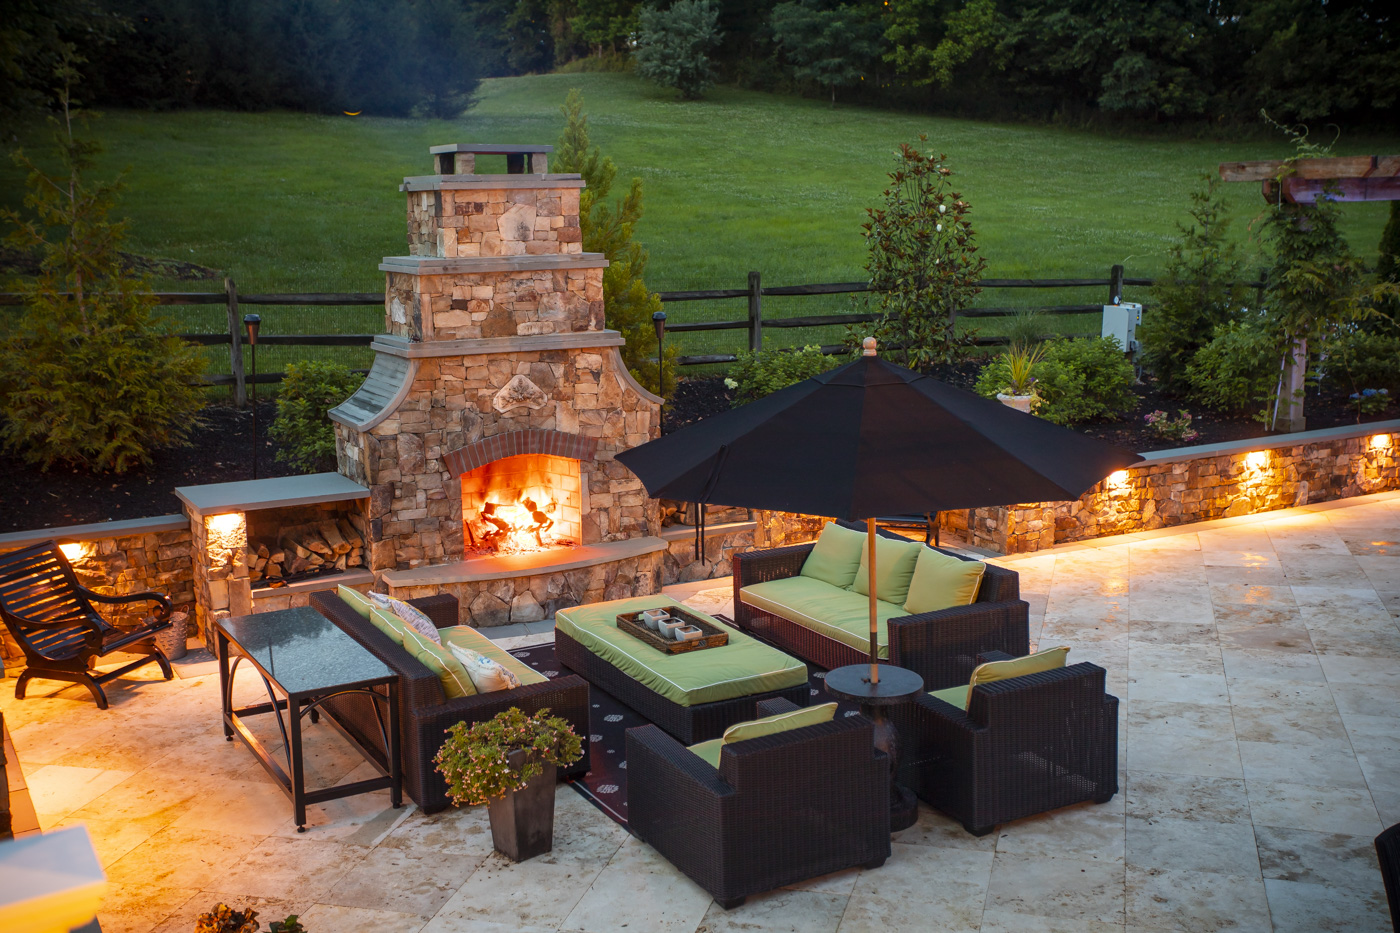 An Outdoor Fireplace vs. Fire Pit: Which is Best for My Northern Virginia Backyard?